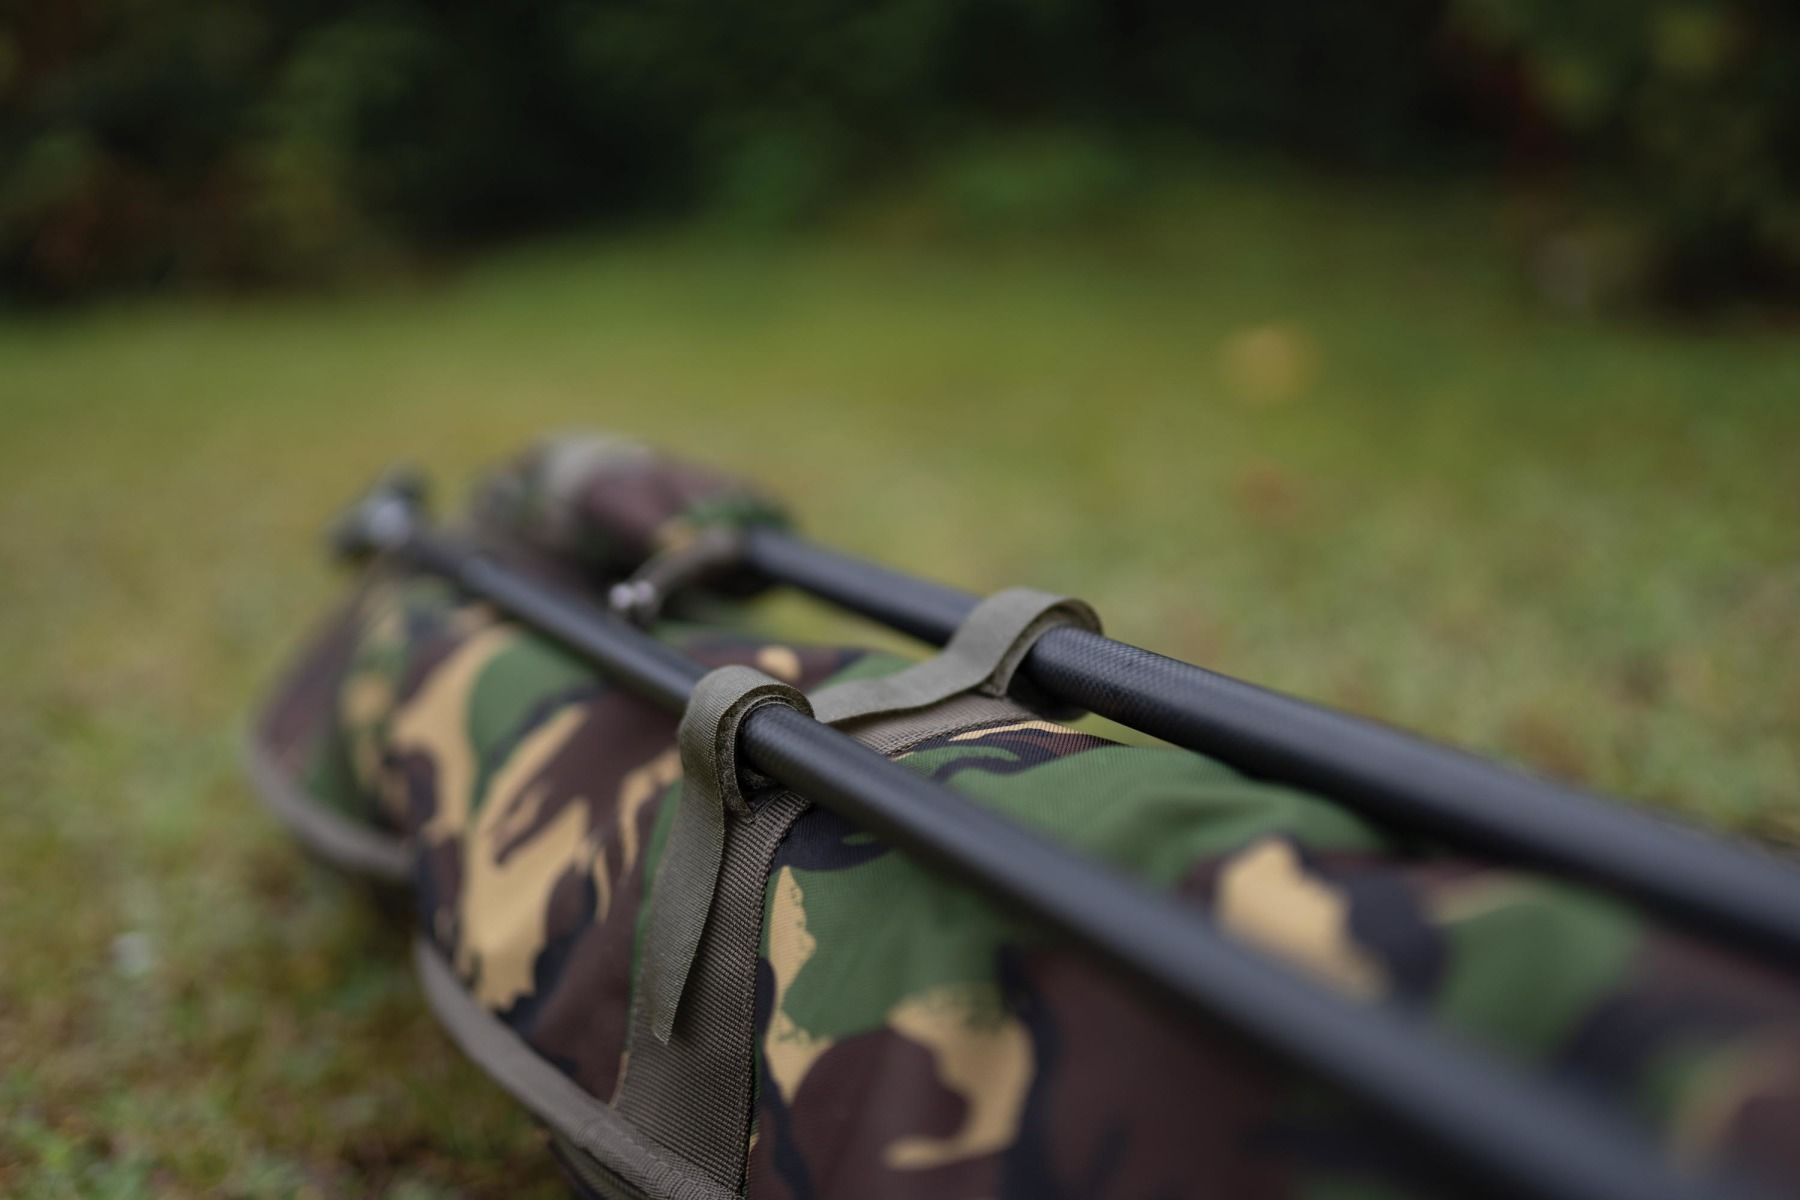 There's space on the outside for an extra rod and landing net poles